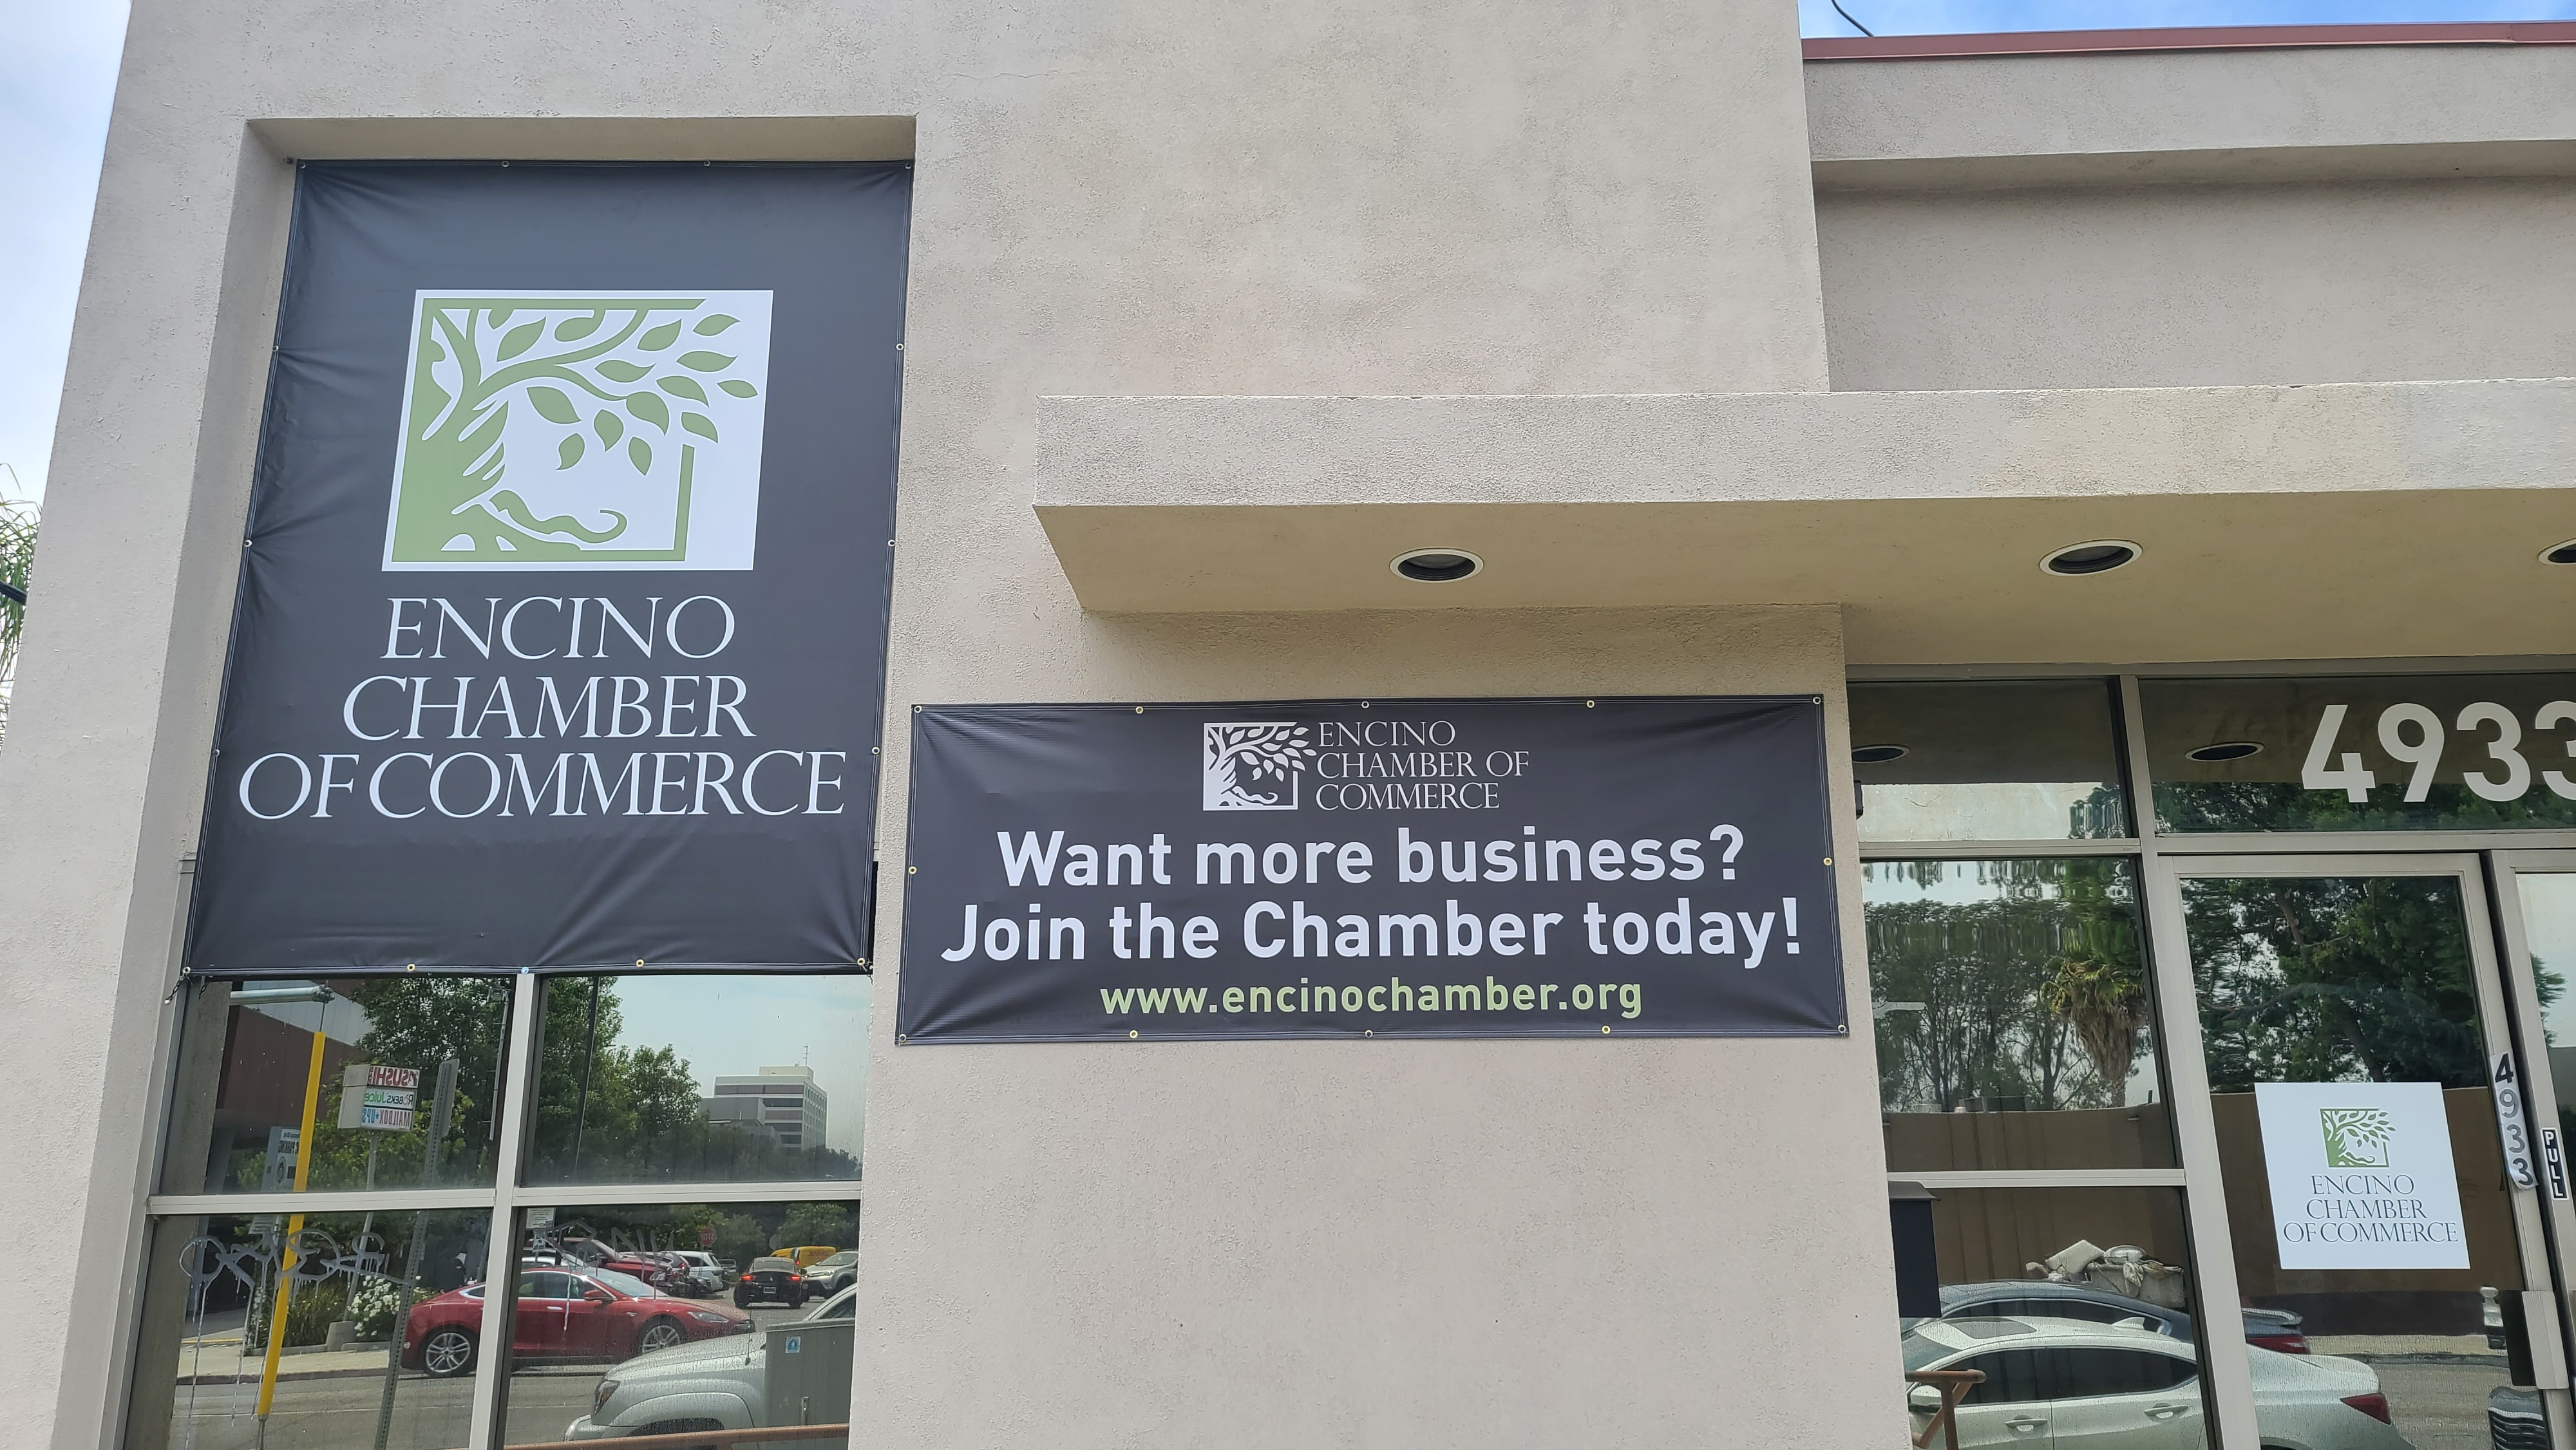 These are the advertisement banners we created for Encino Chamber of Commerce's campaign.